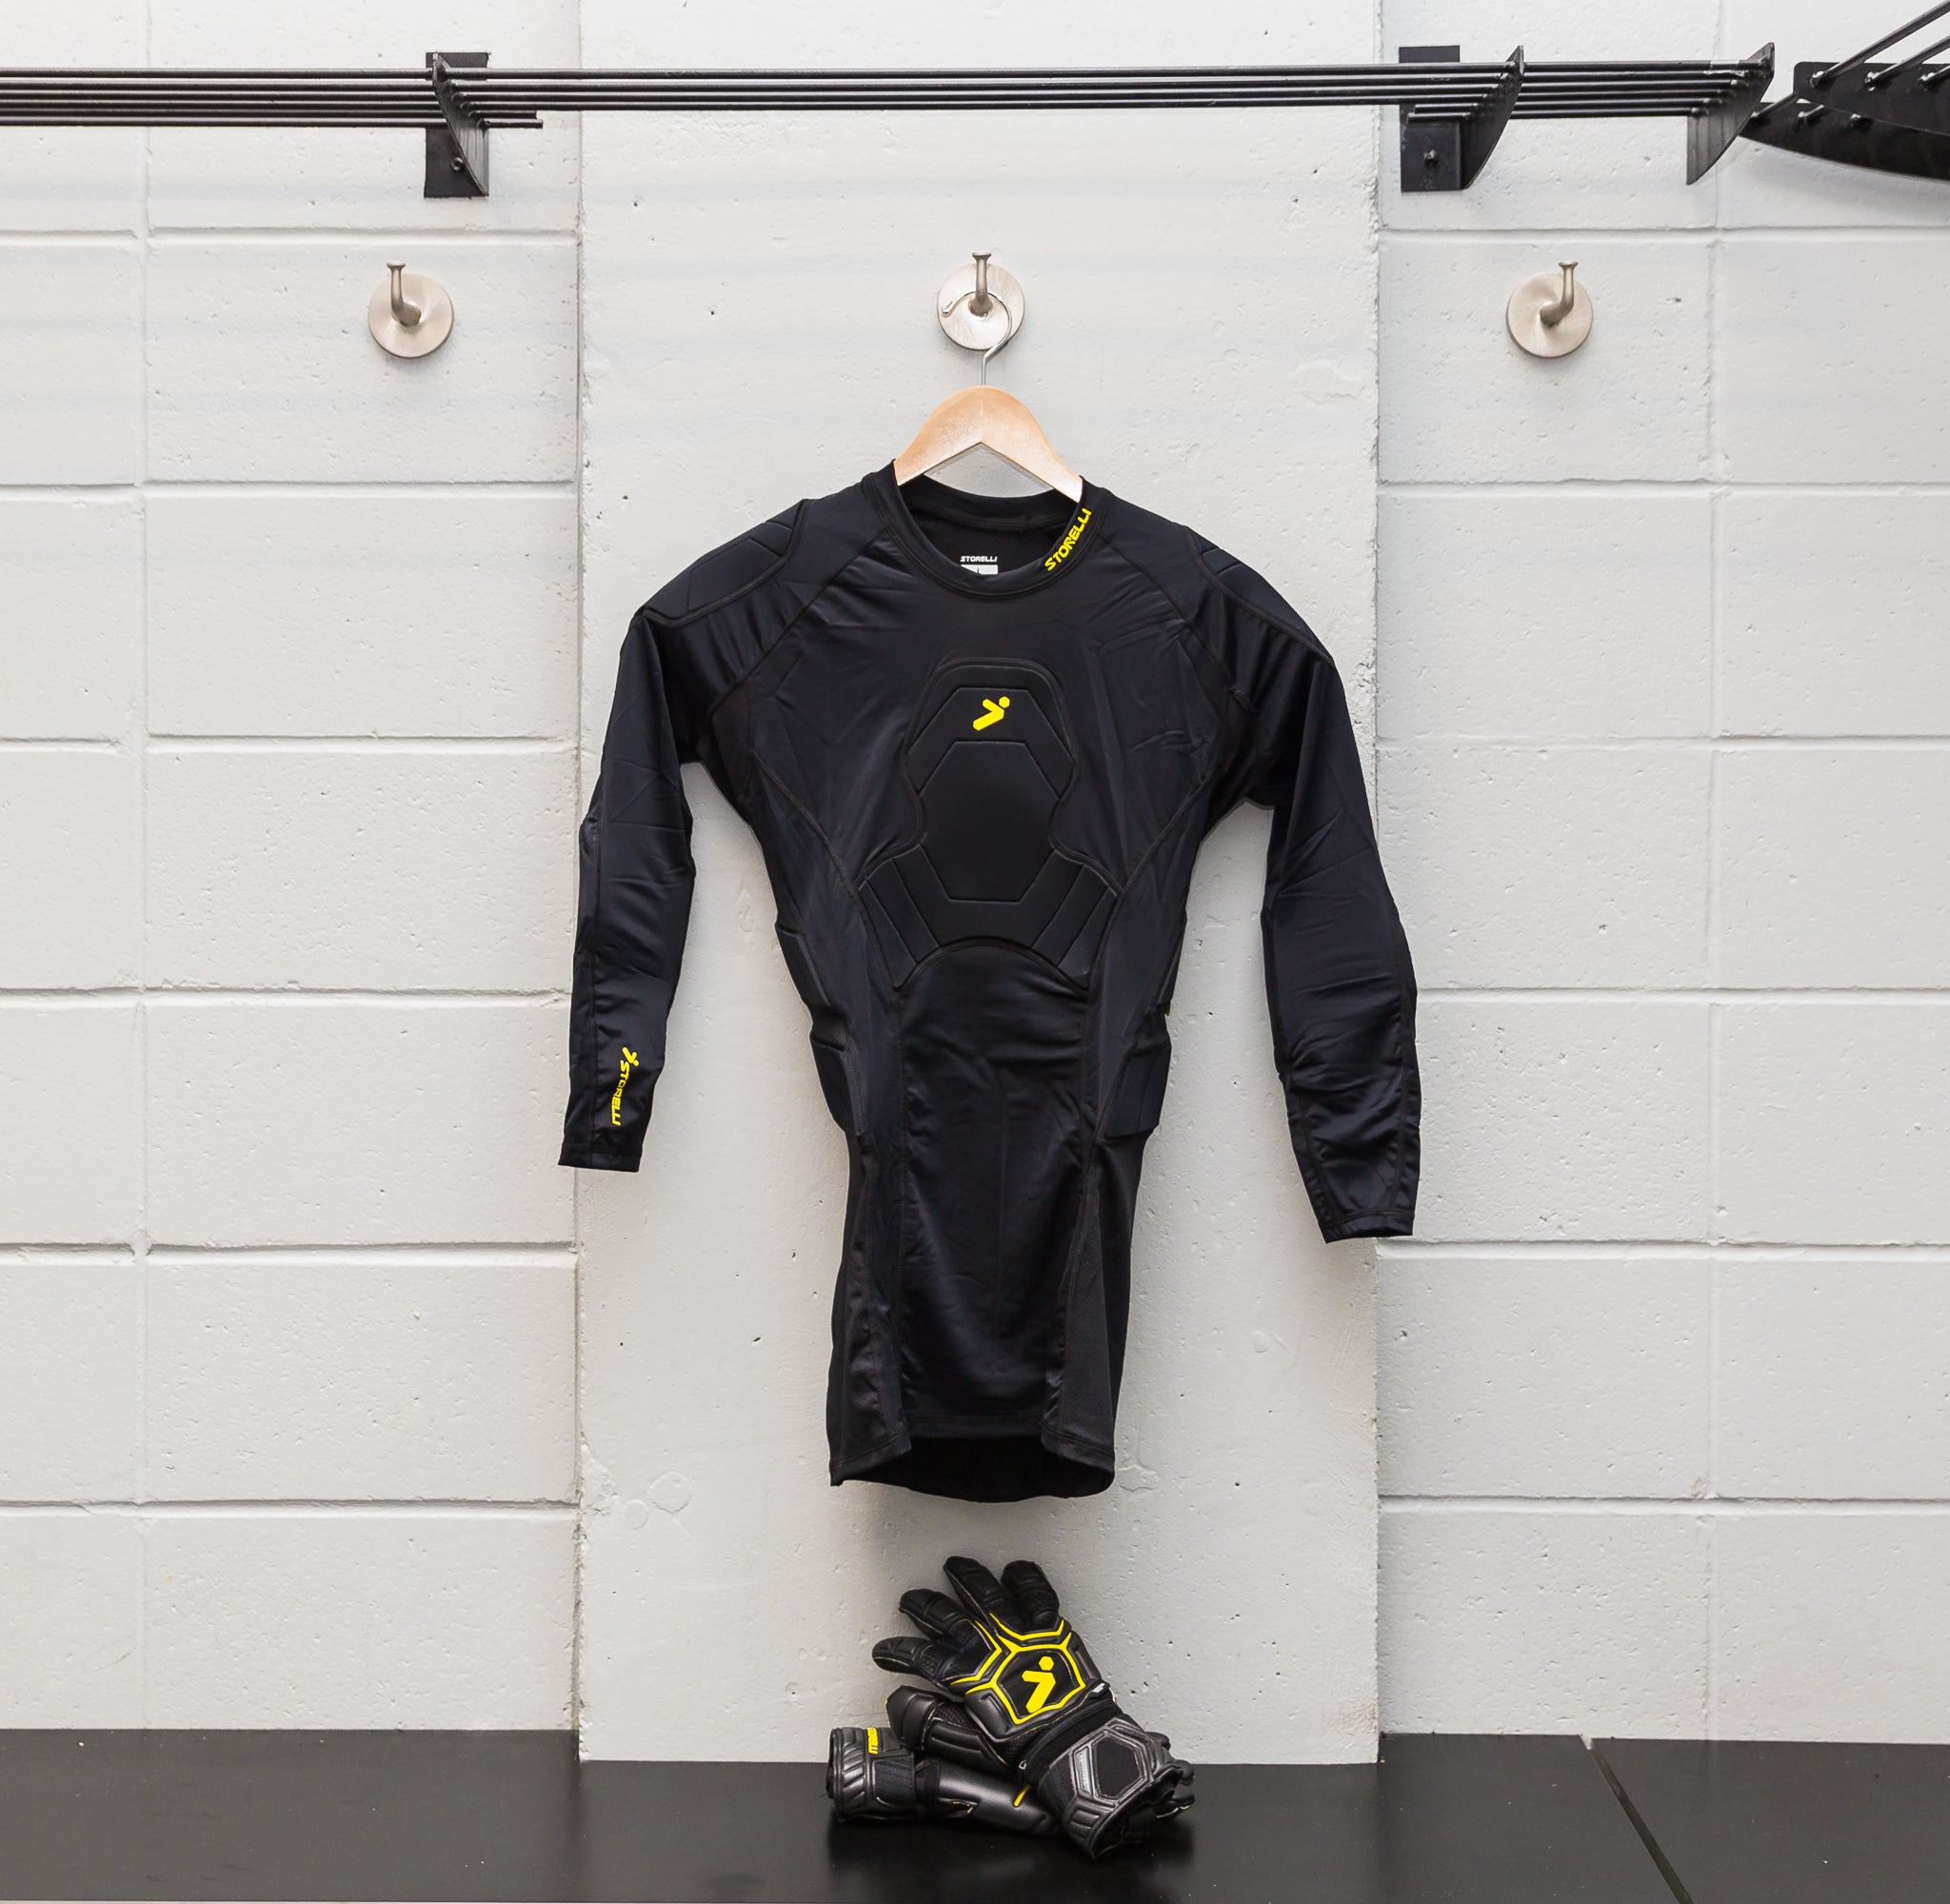 storelli sports 3/4 bodyshield goalkeeper top hanging from hangar in locker room